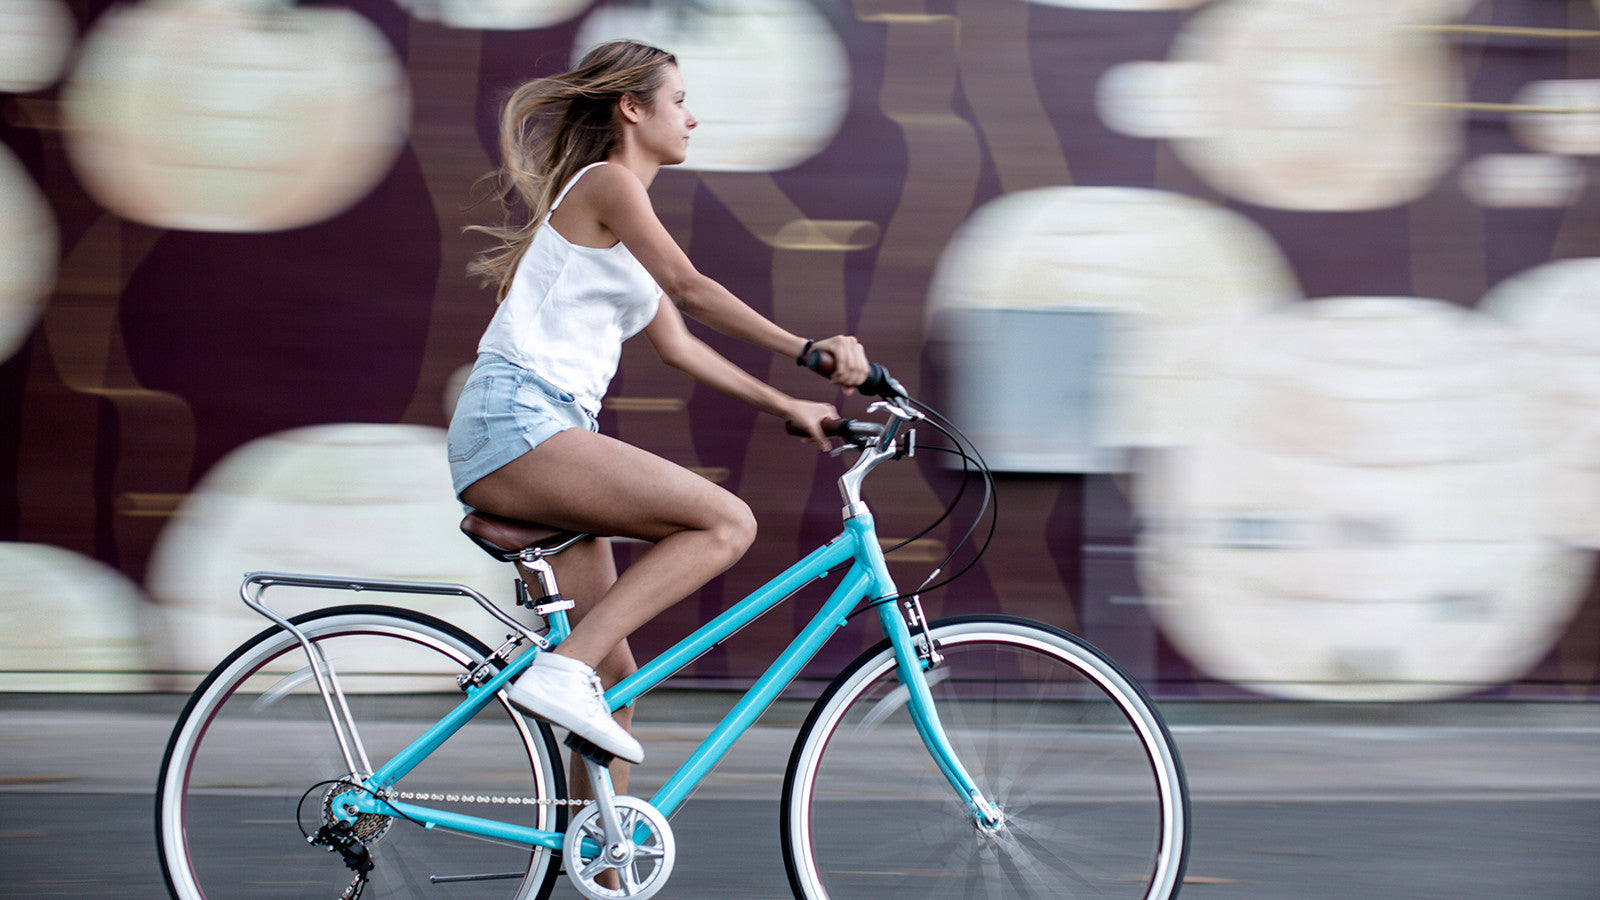 Does sixthreezero Offer a 1 Speed Beach Cruiser with an Aluminum Frame